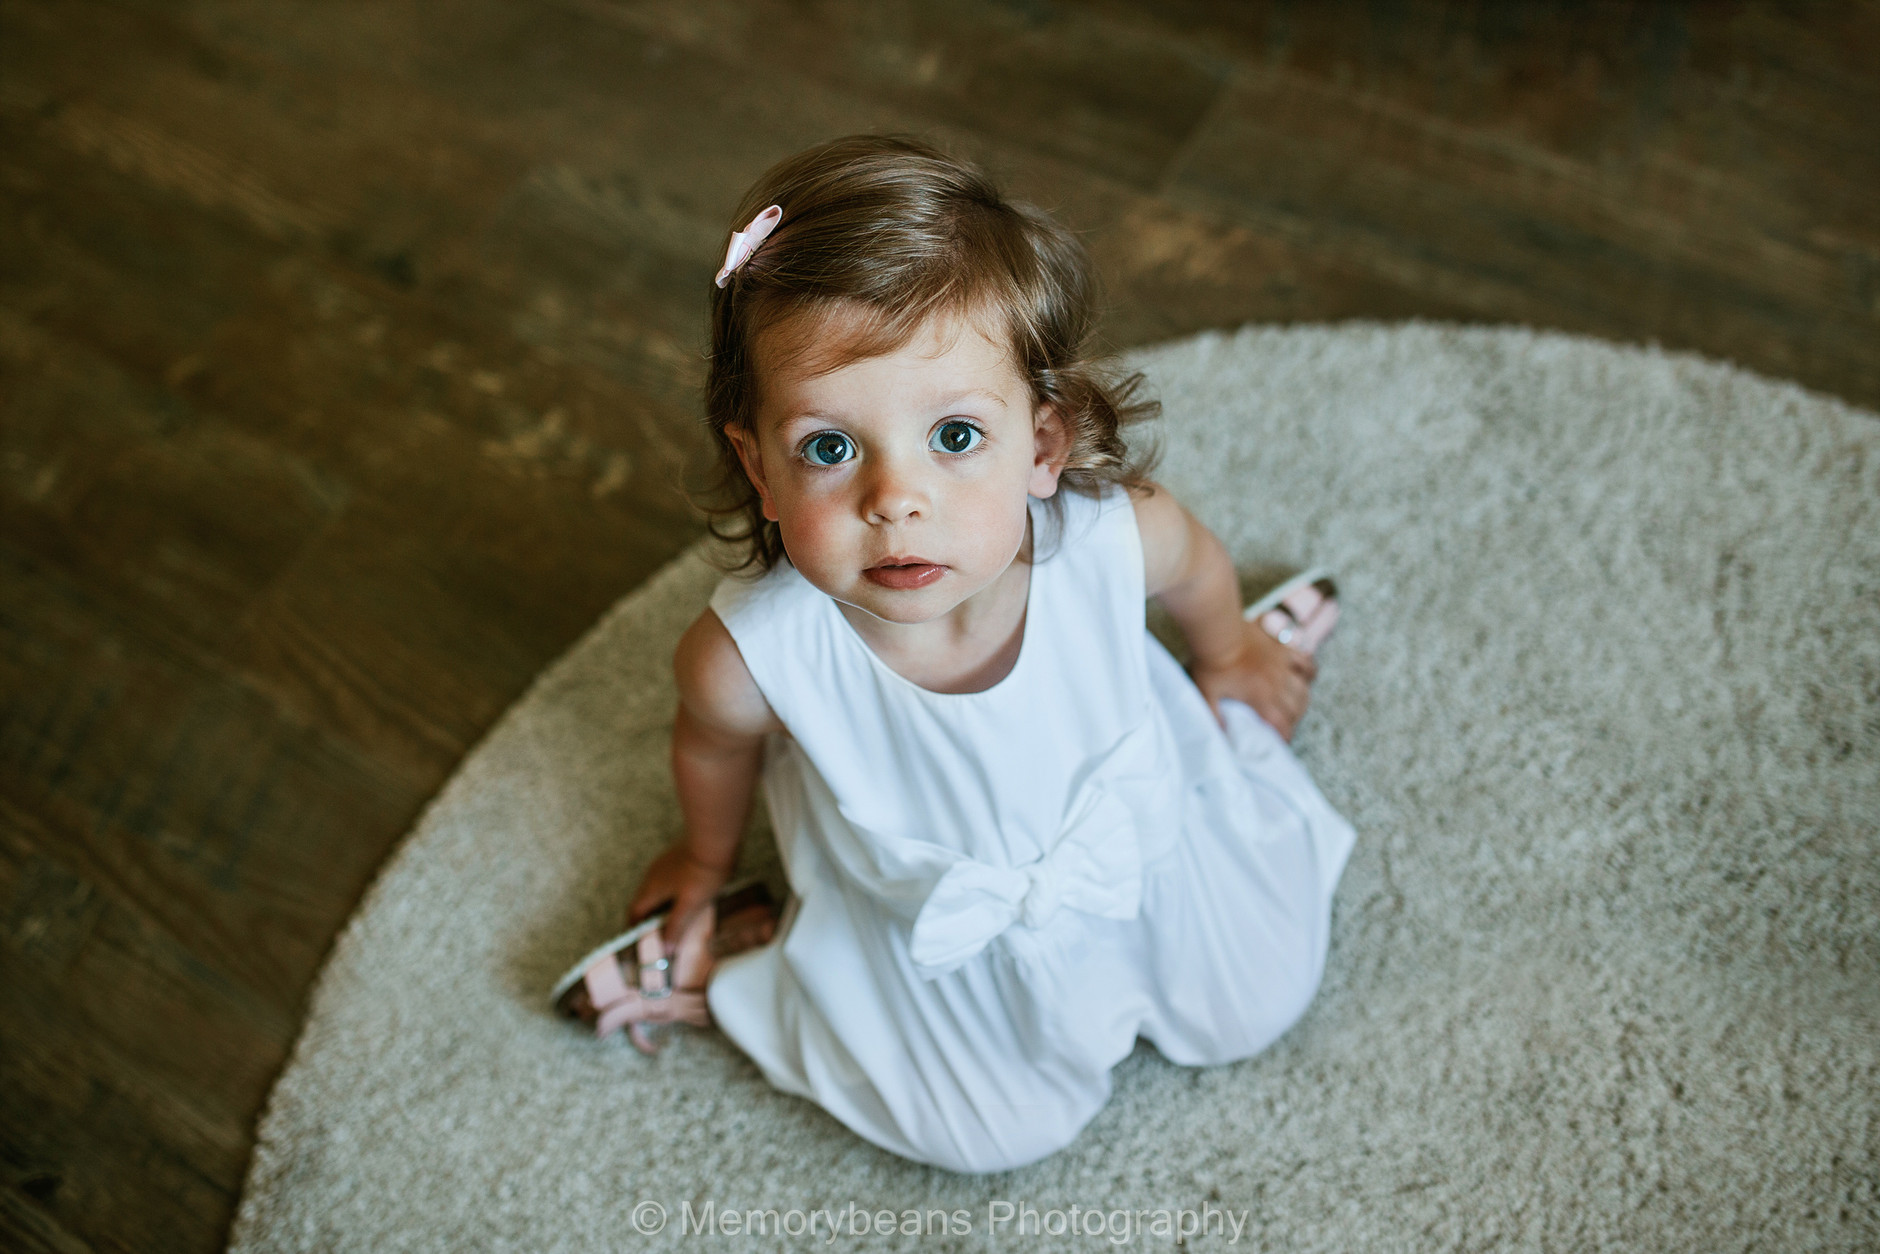 Little girl with big blue eyes looking at the camera